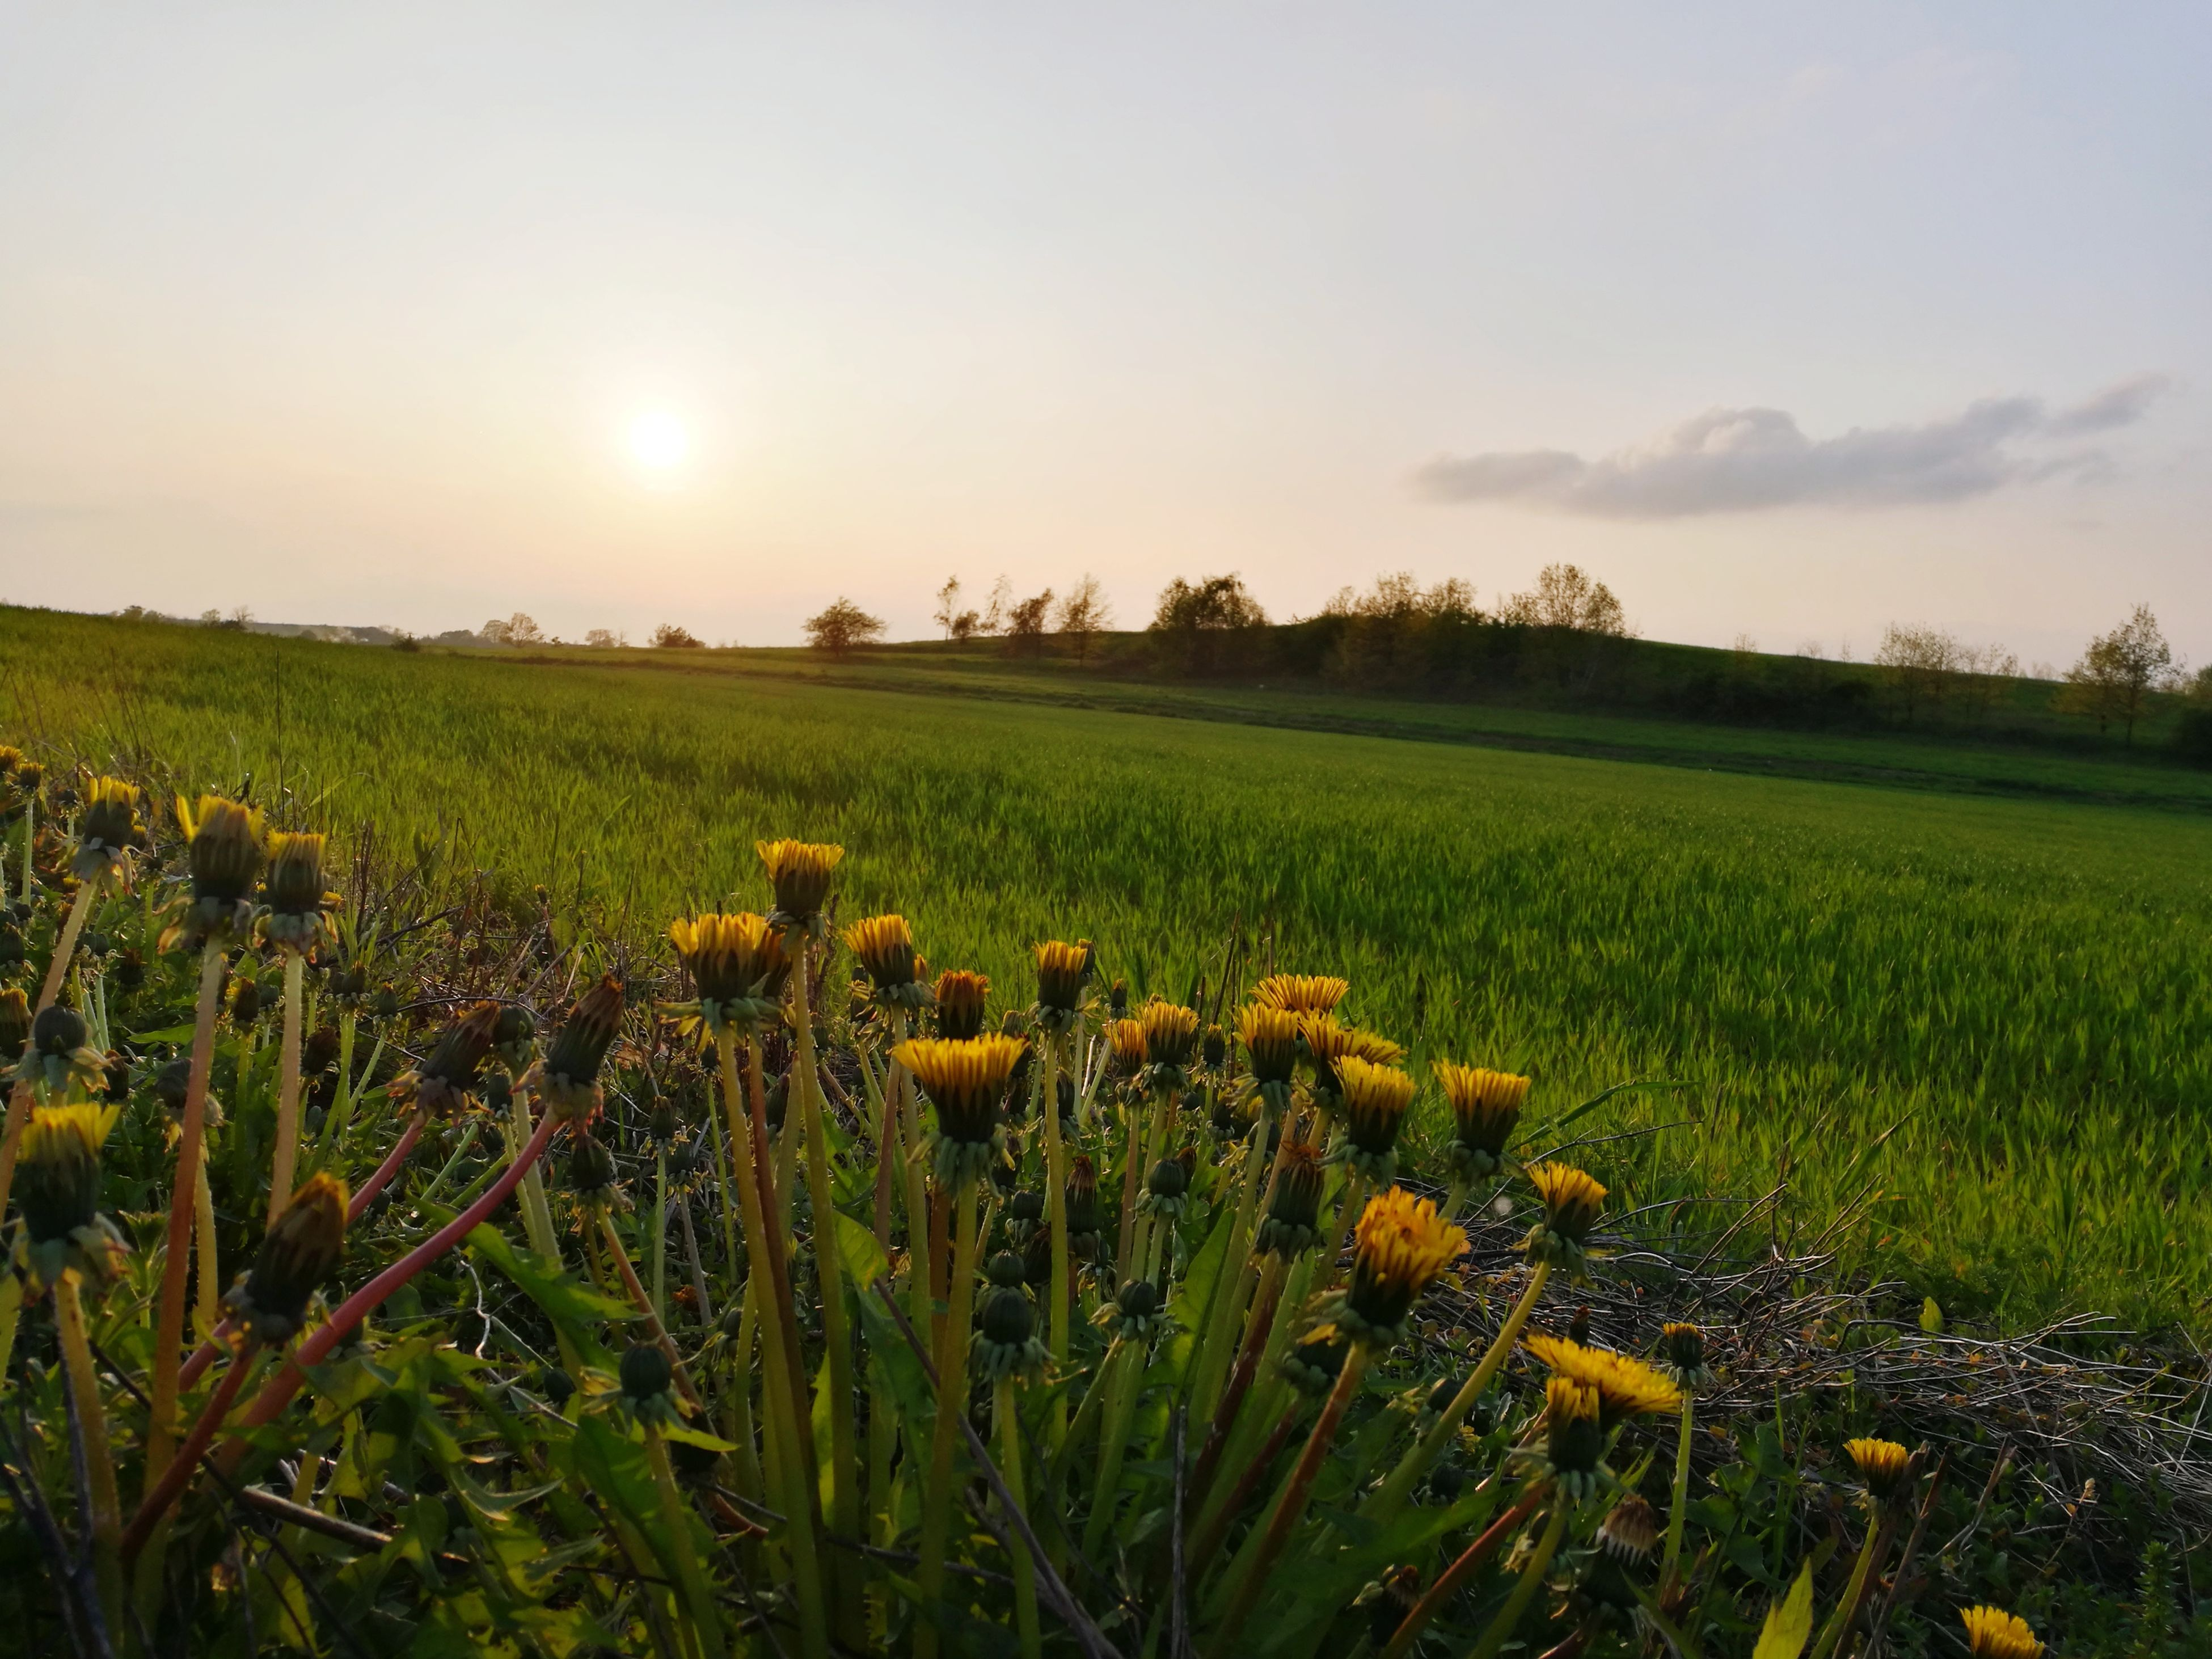 field, growth, nature, sunset, agriculture, beauty in nature, sky, tranquility, landscape, tranquil scene, scenics, rural scene, no people, plant, outdoors, grass, day